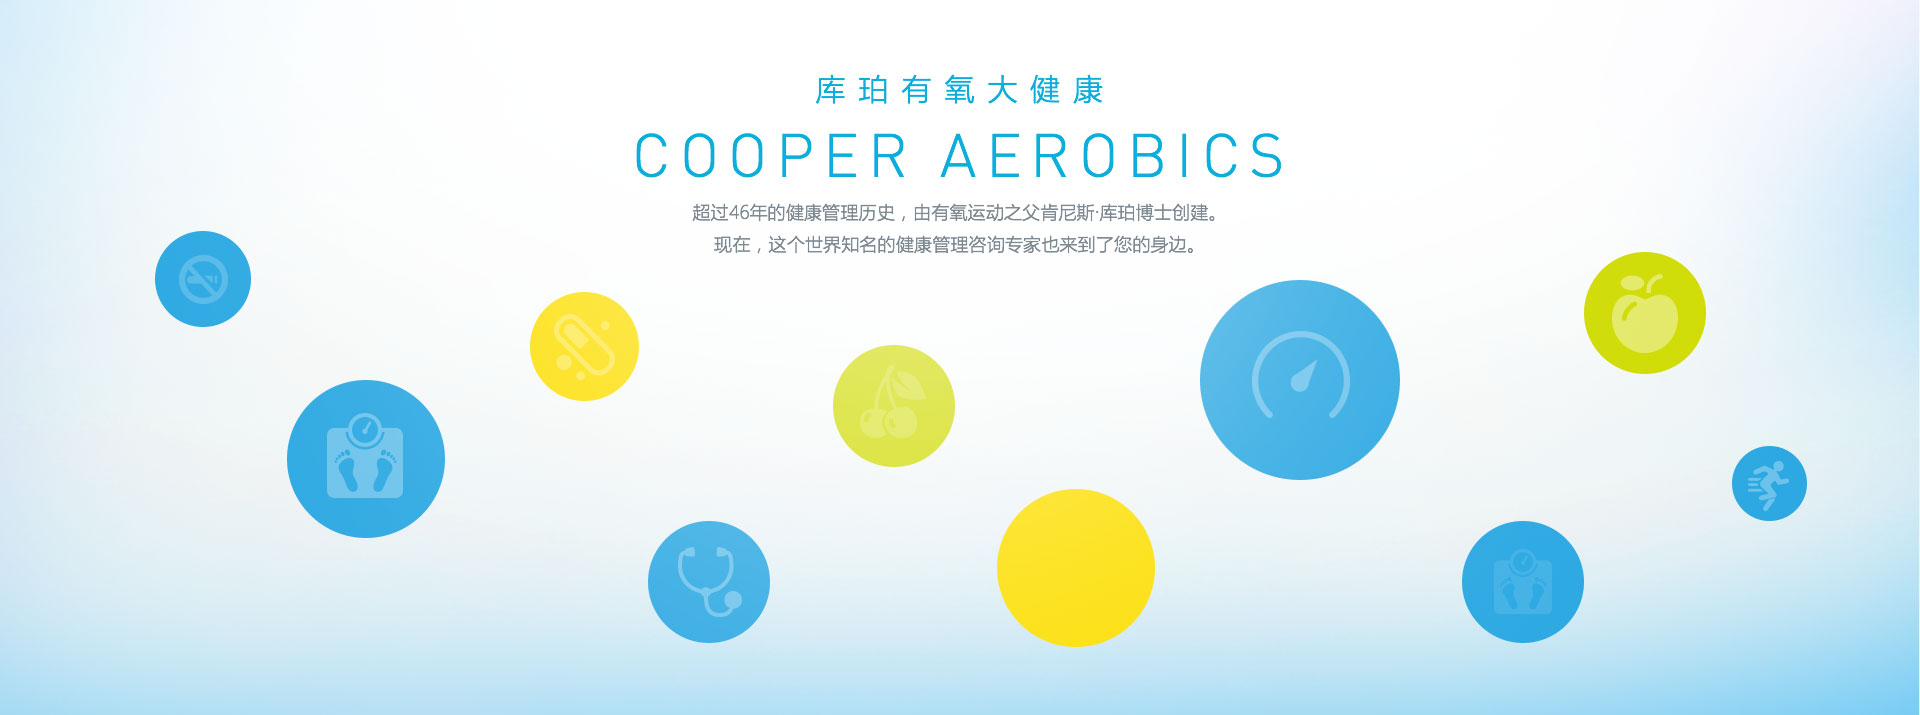 cooper-webstie首页1